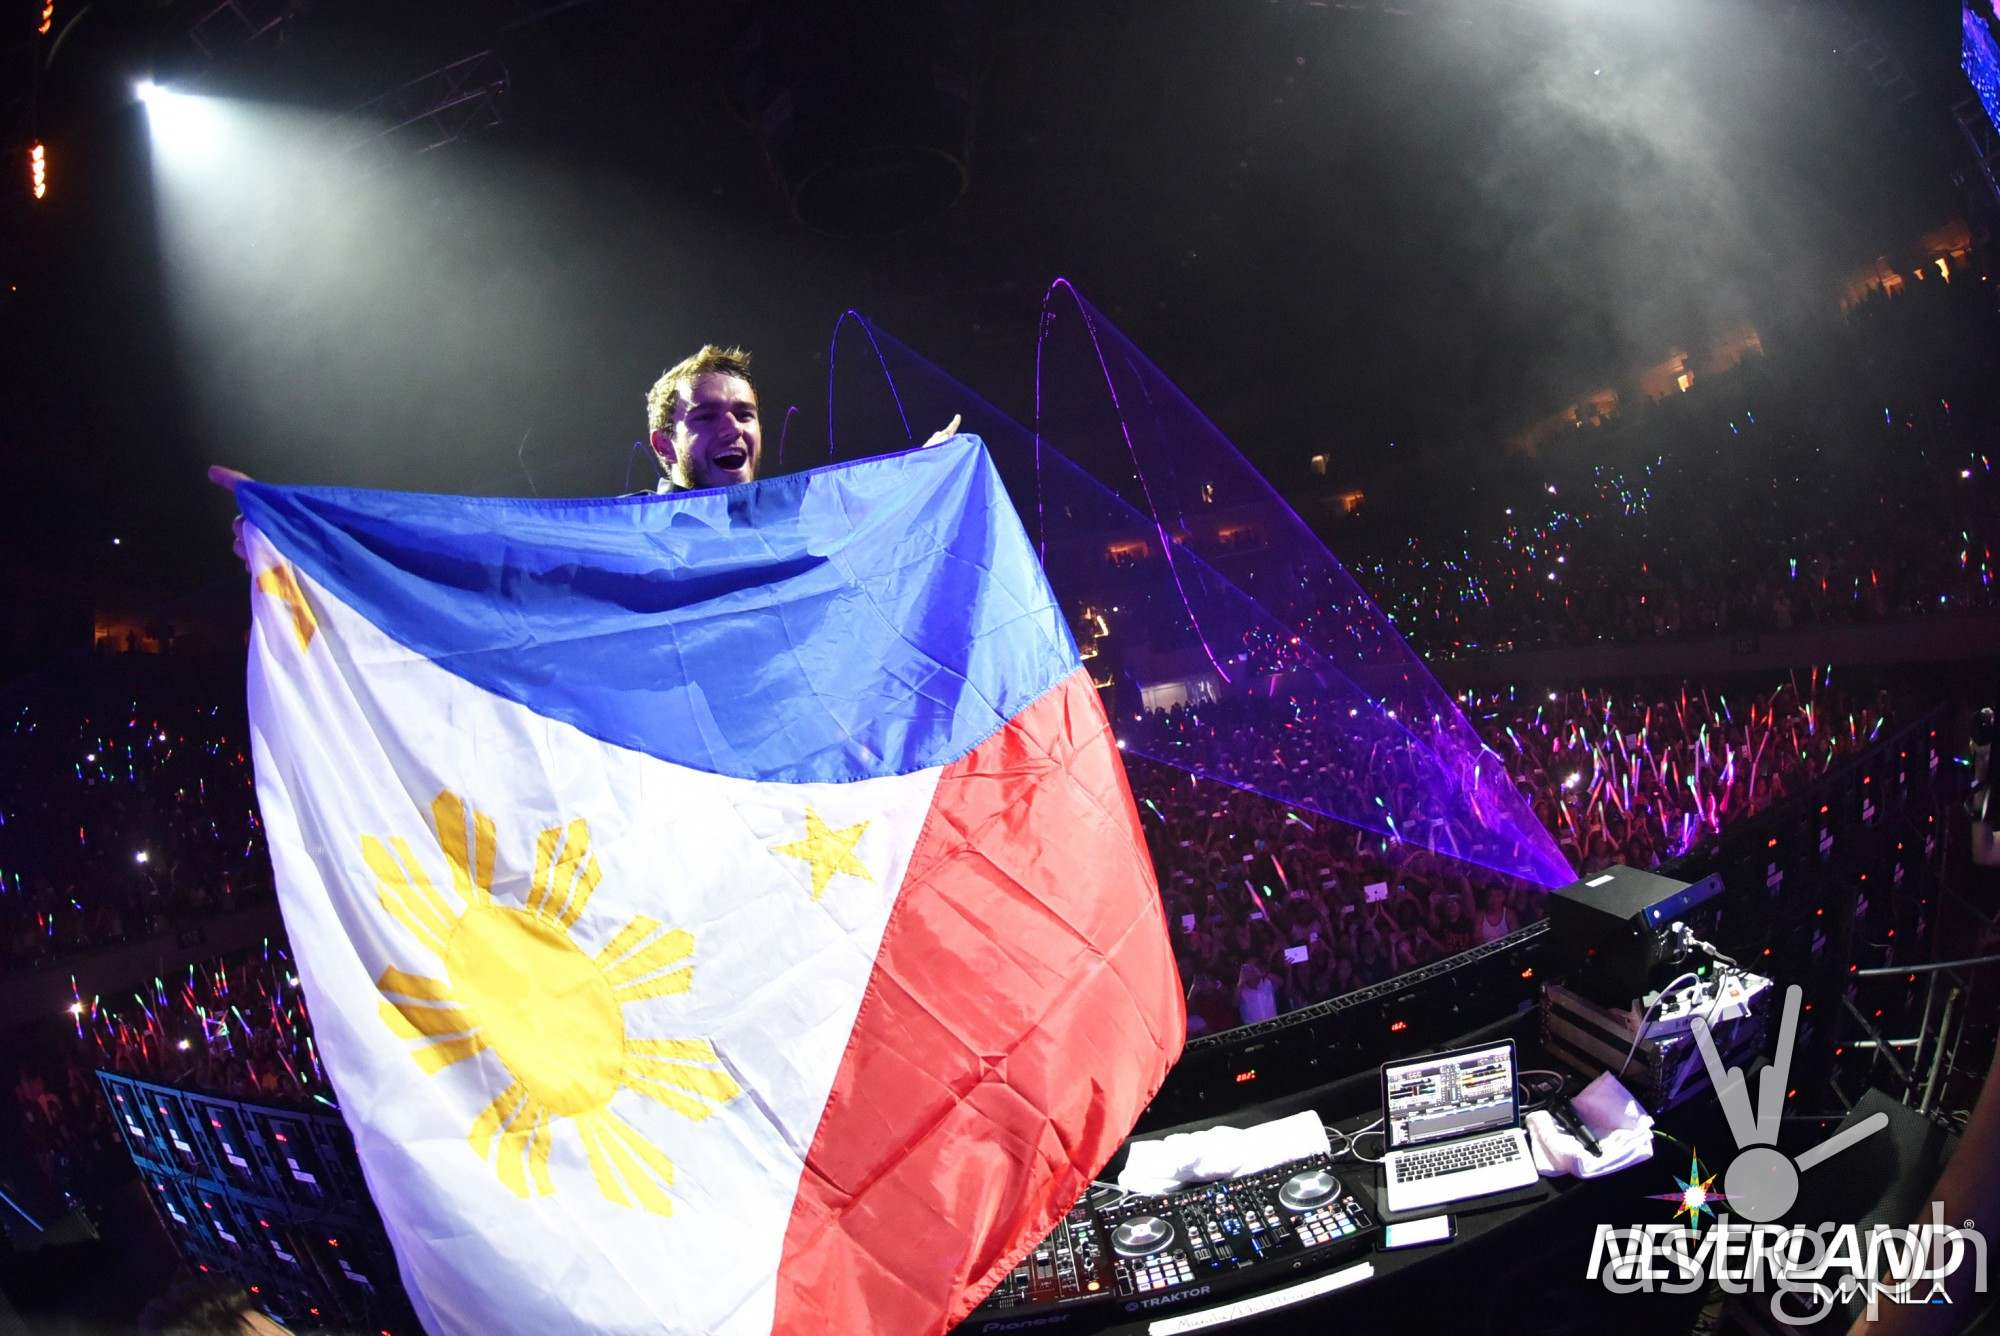 Neverland Manila Presents: Zedd True Colors (photo: Daniel Tan Photography)